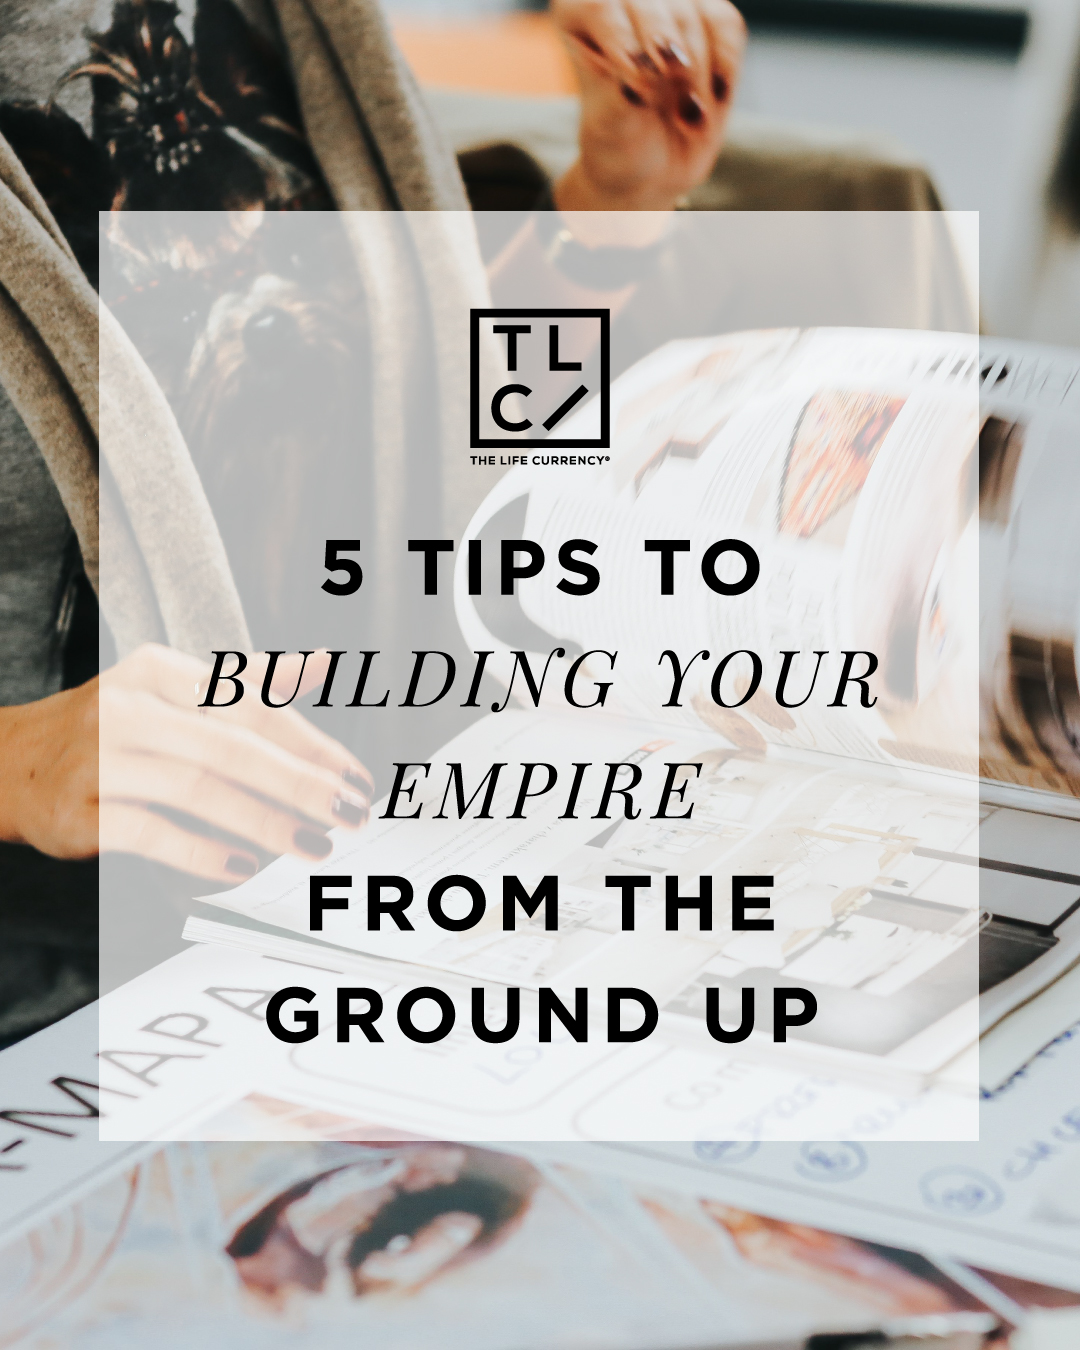 5 Tips to Building Your Empire from the Ground Up